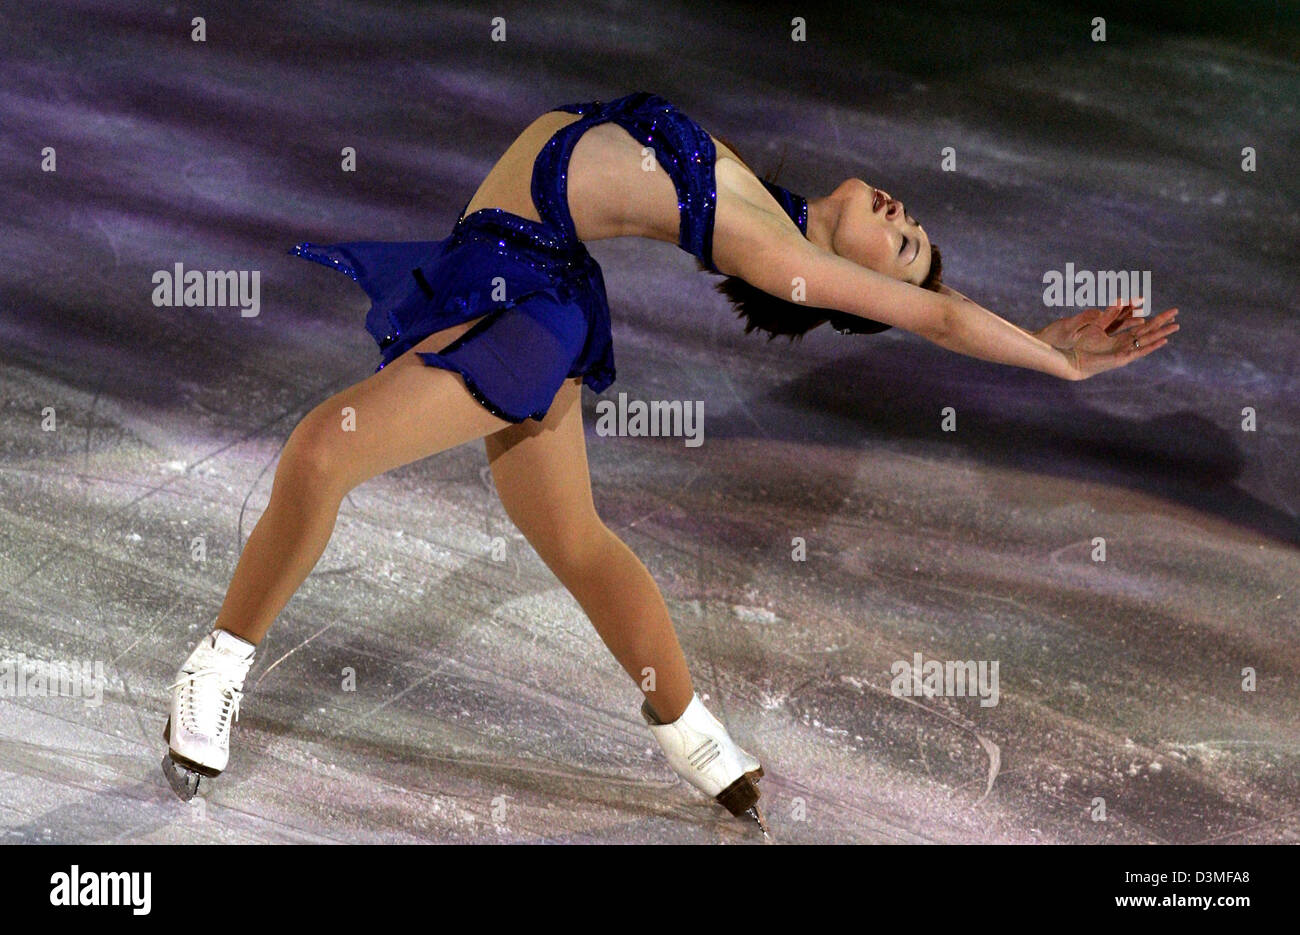 The Japanese Figure Skater Shizuka Arakawa Performs During The Figure Skating Exhibition Gala In The Palavela Hall At The Xx Winter Olympics In Turin